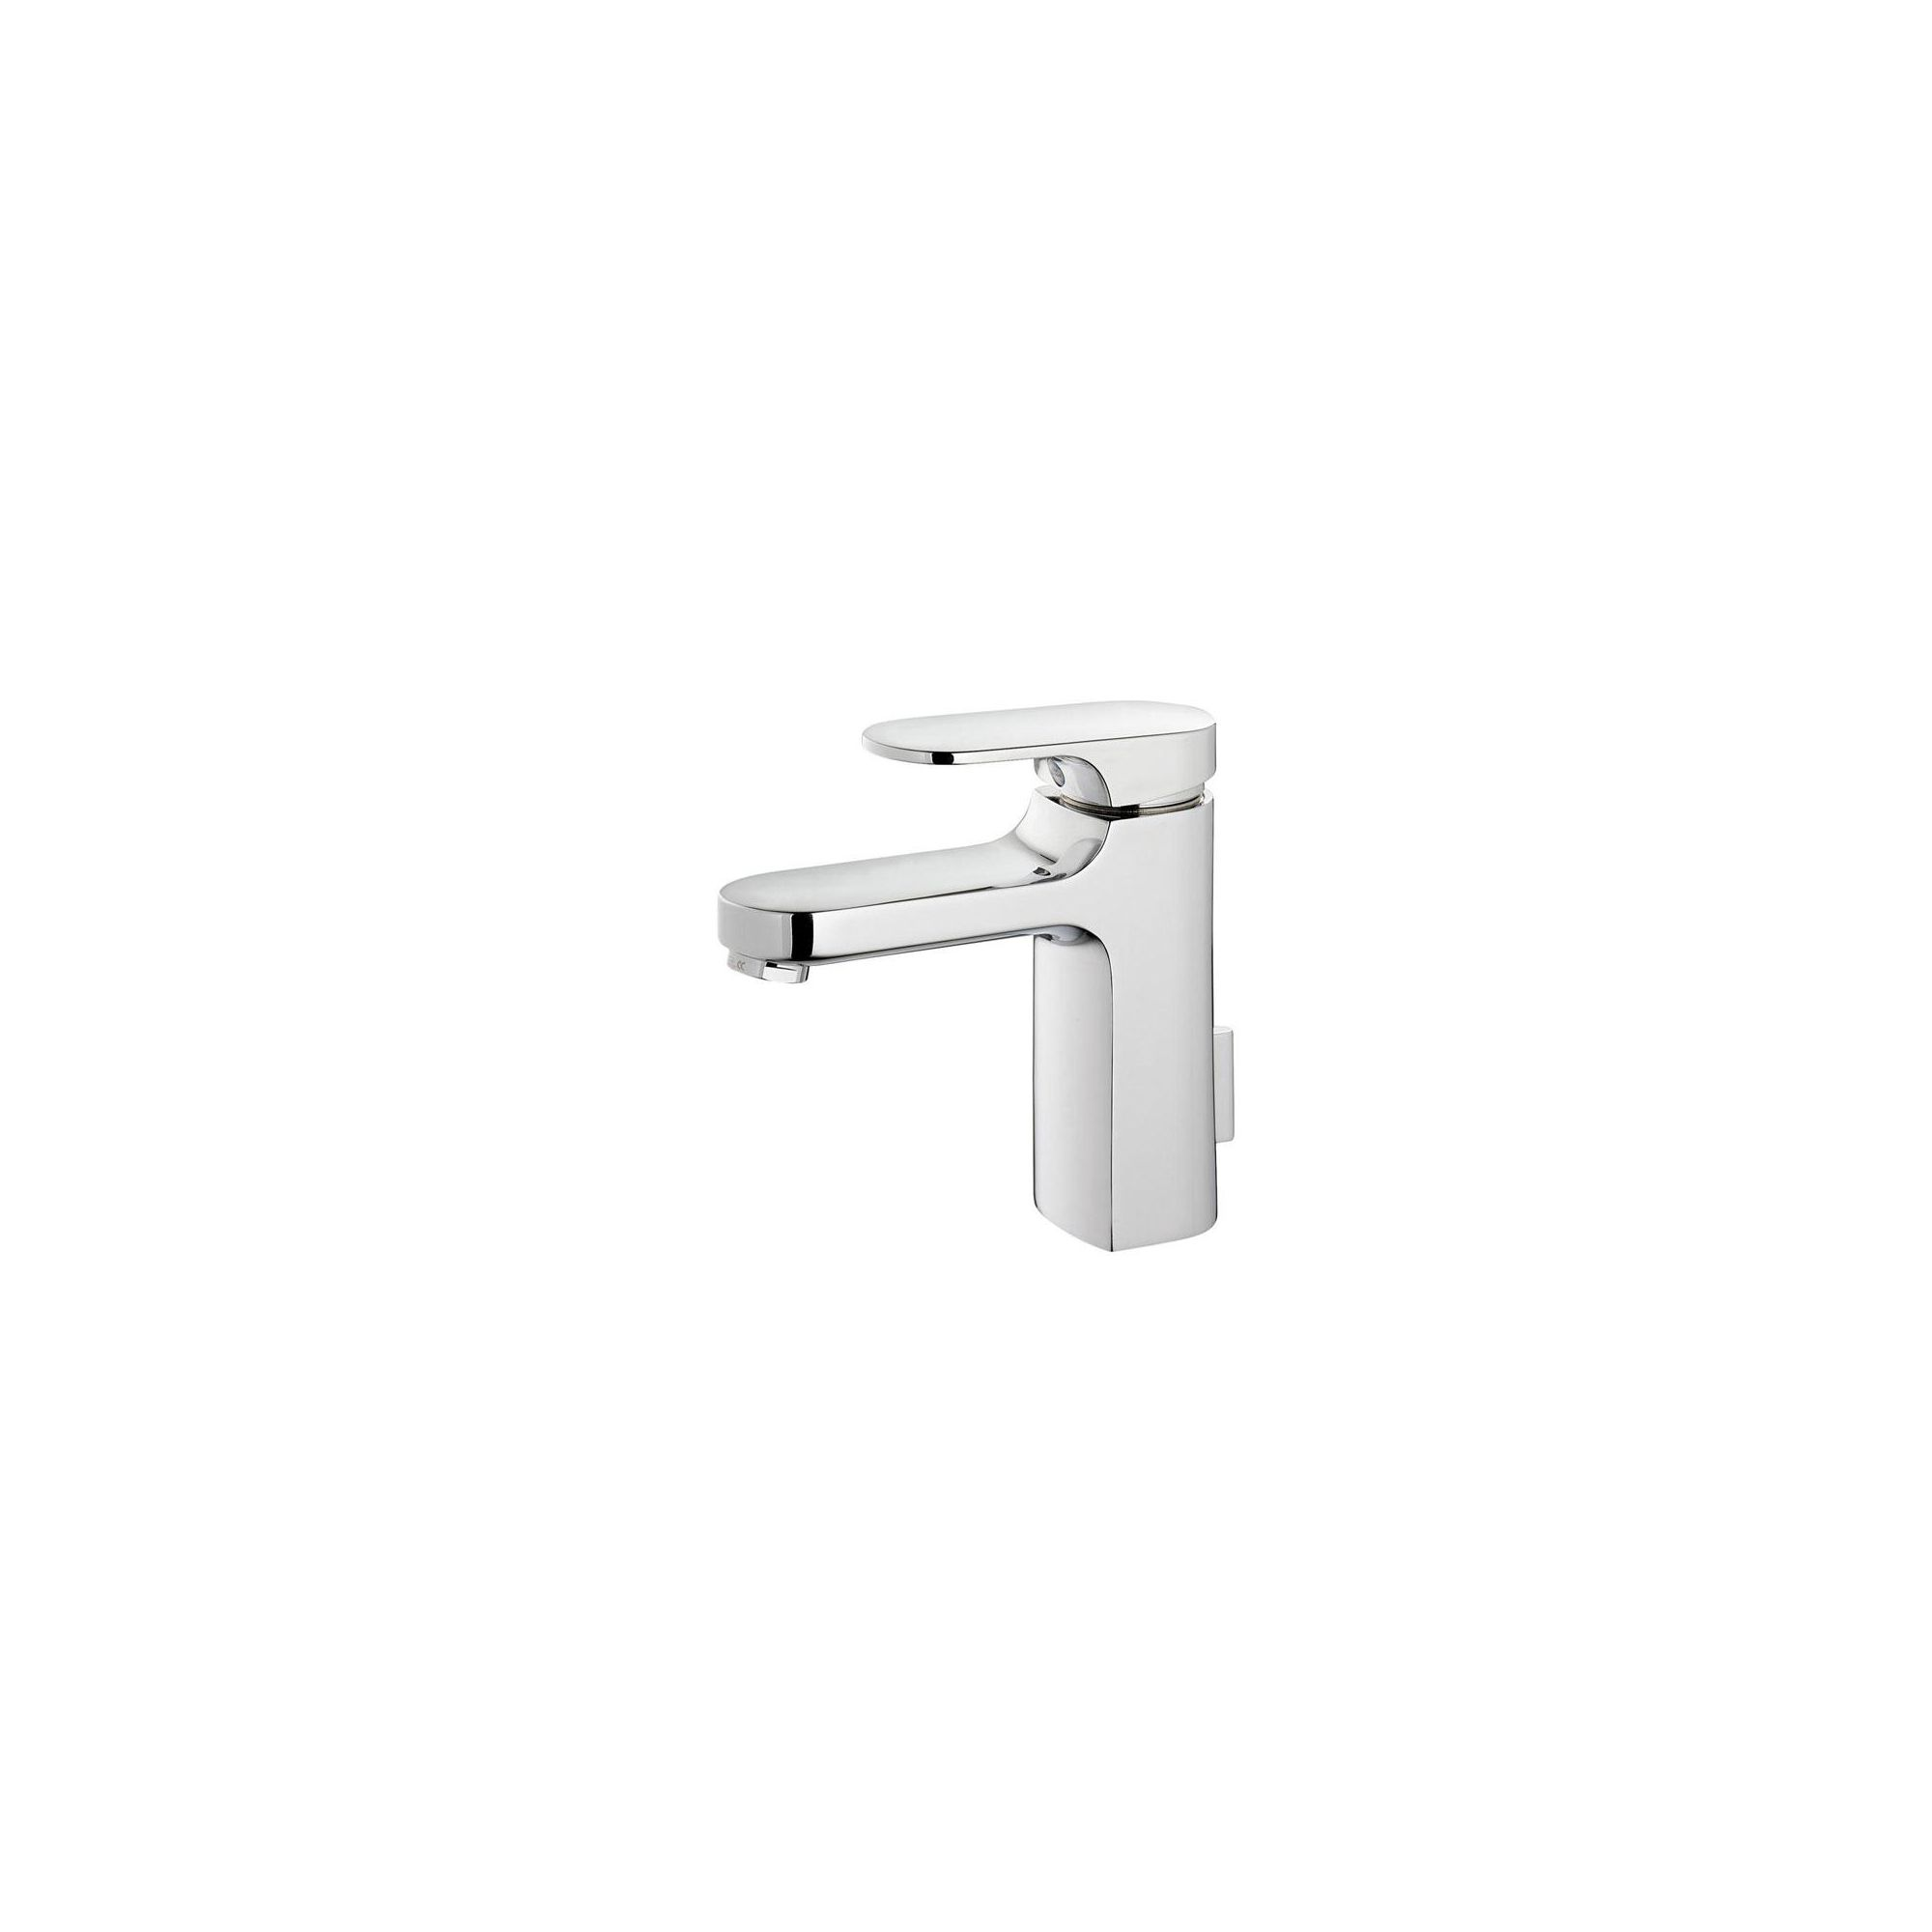 Ideal Standard Moments Single Lever Mono Basin Mixer Tap Chrome excluding Waste at Tesco Direct